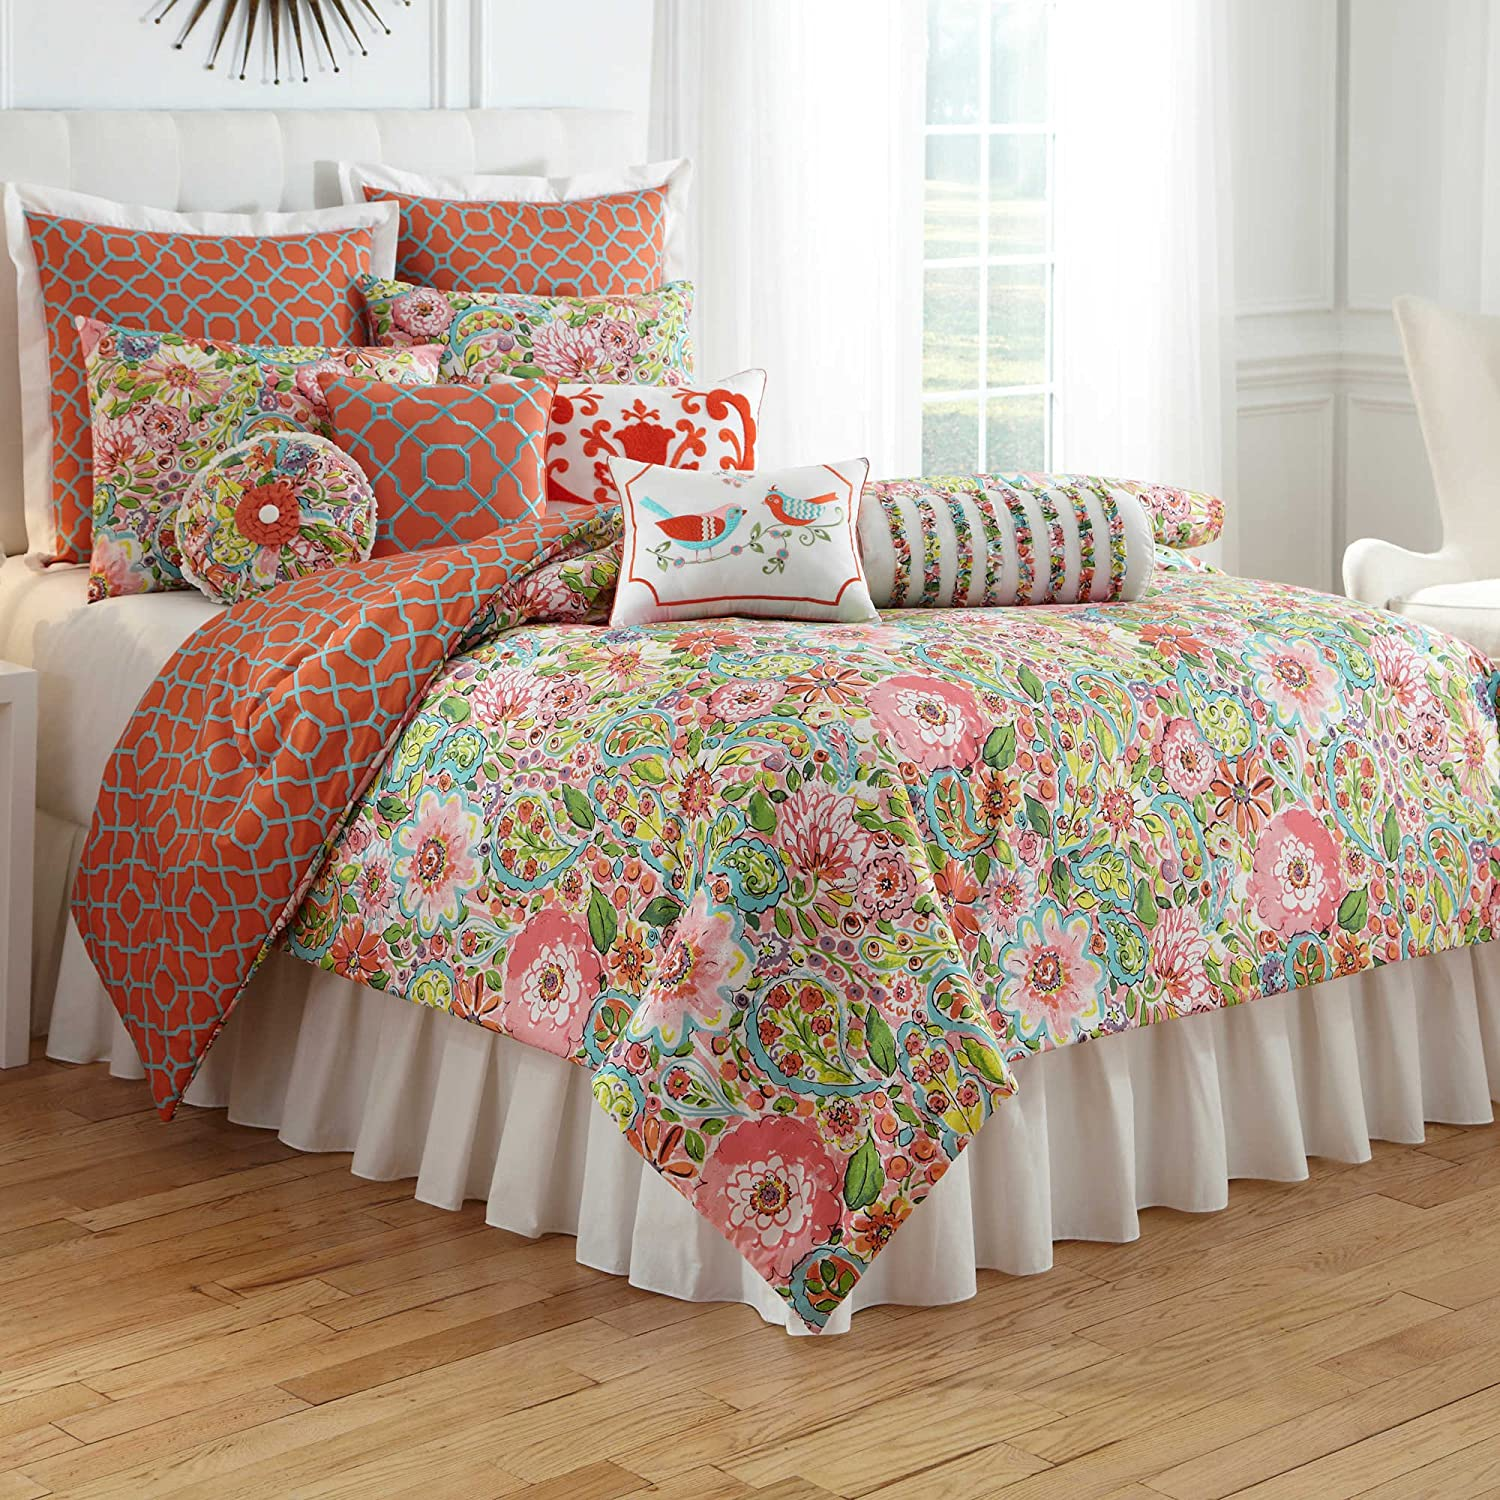 comforter babe bossbabe room sets dorm collection themes collections a rose dusty boss dormify